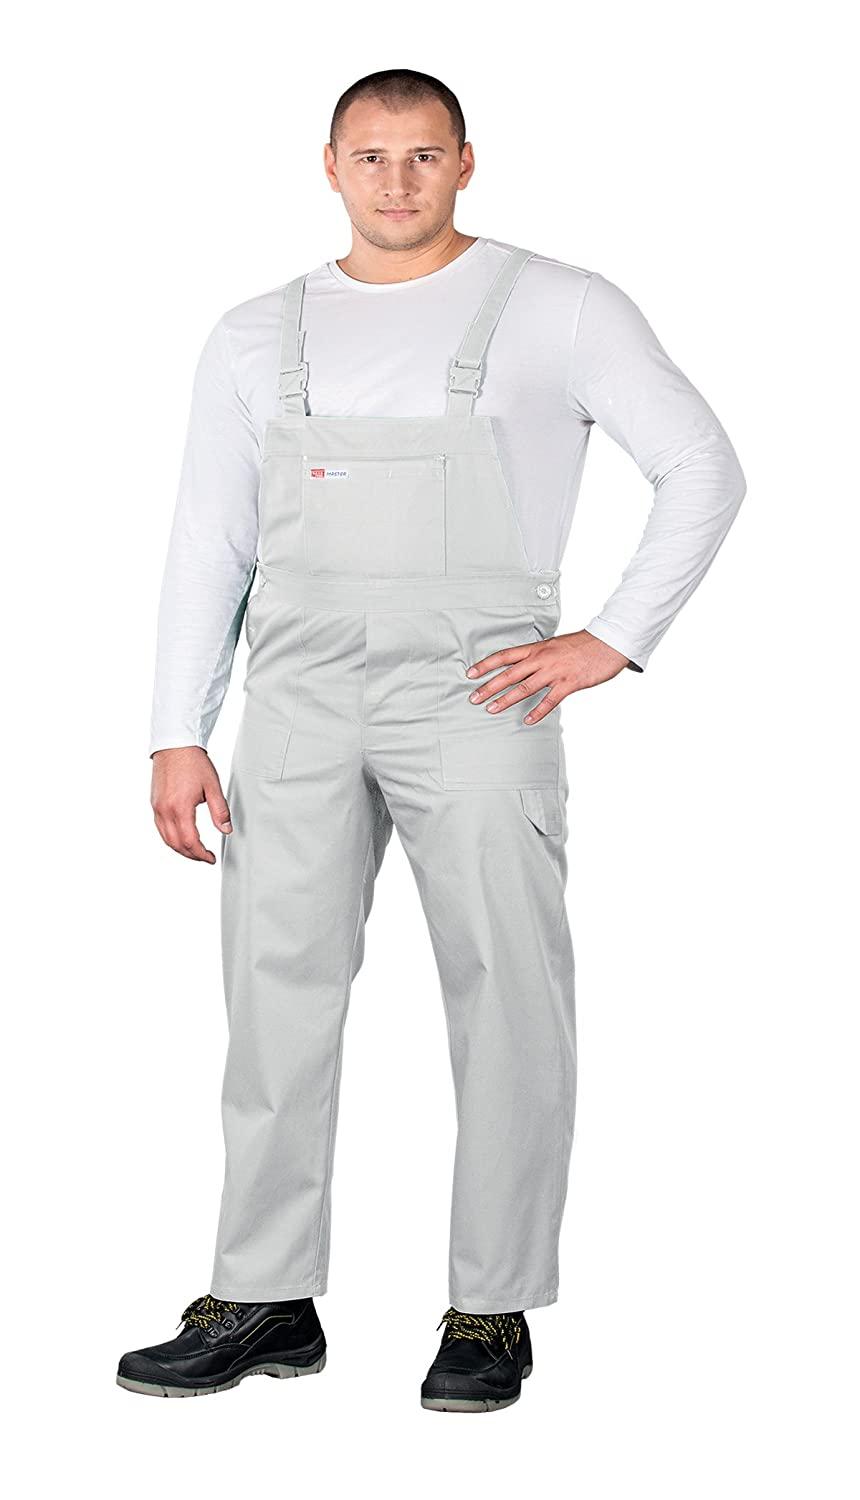 Bib and Brace Overalls Painters and Decorators Work Trousers Half Elastic Waist